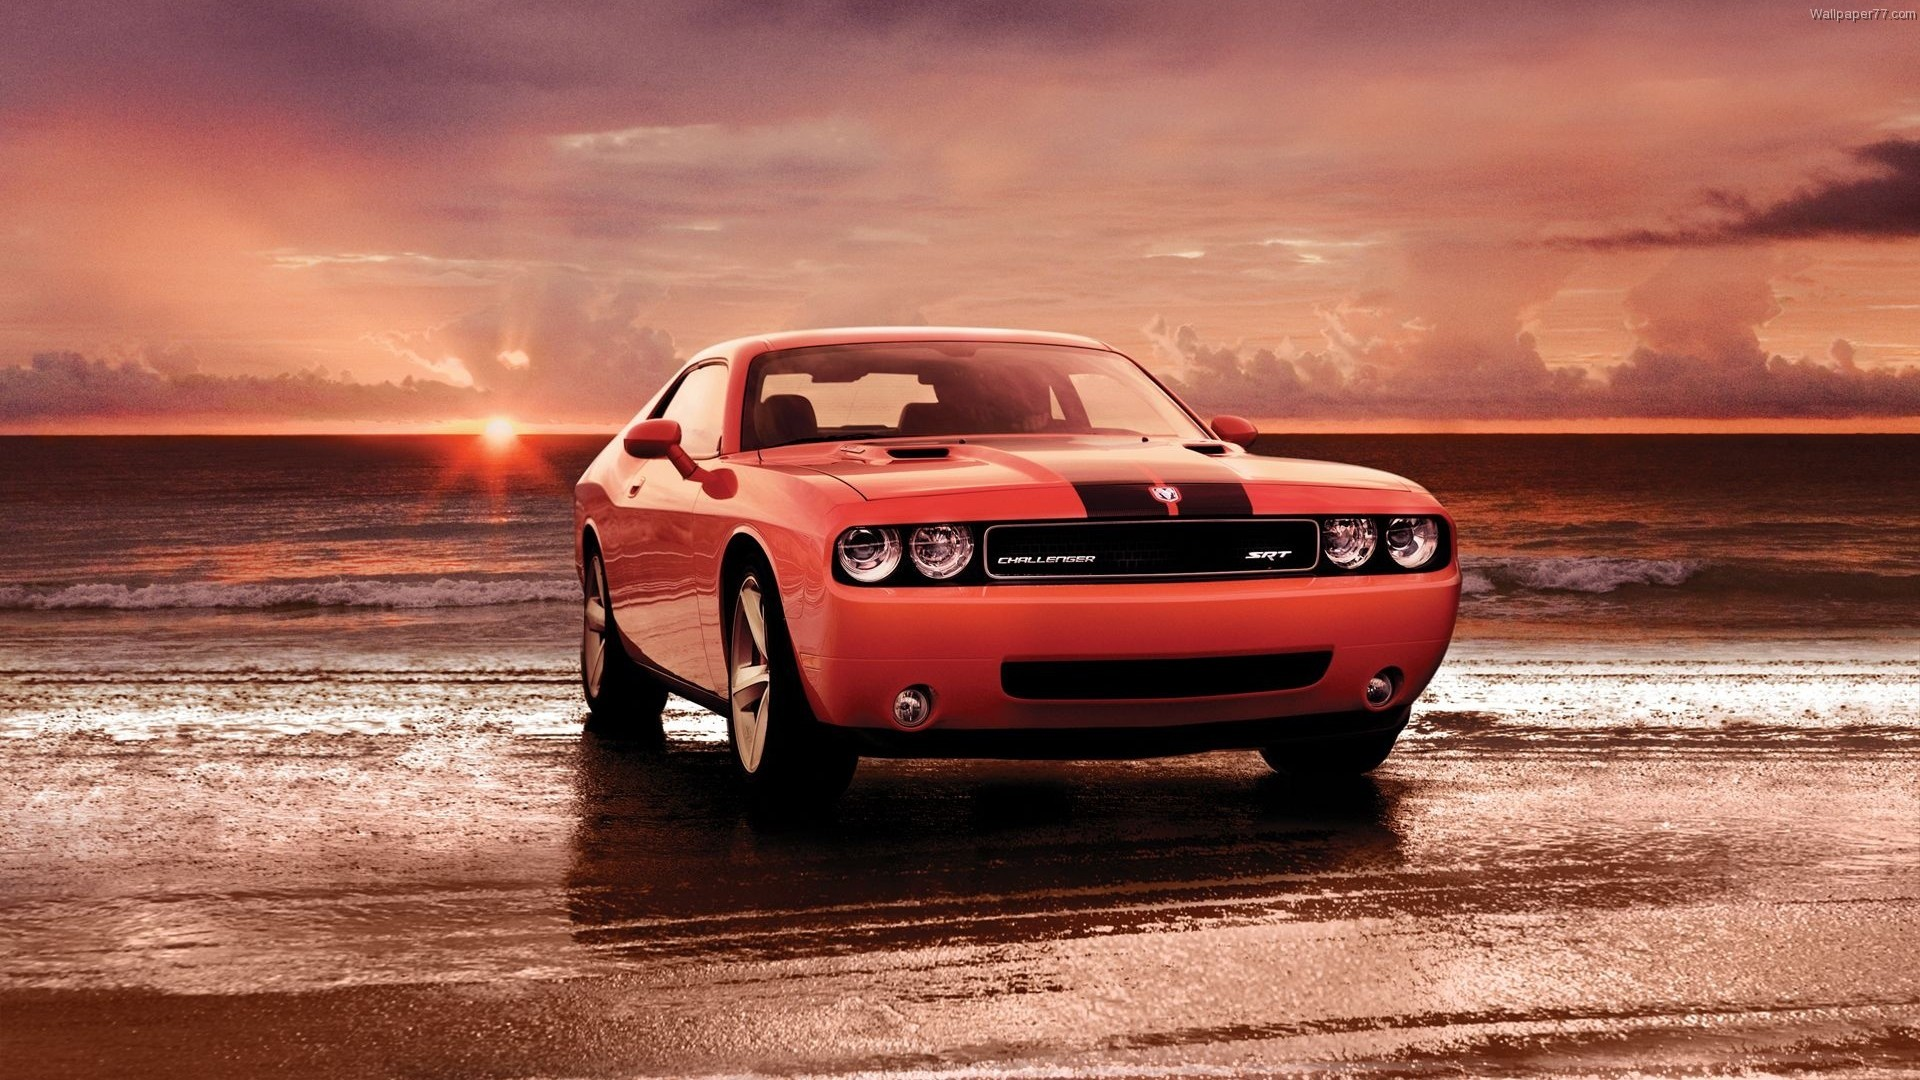 Hd Wallpaper Car Wallpapers Adorable Wallpapers